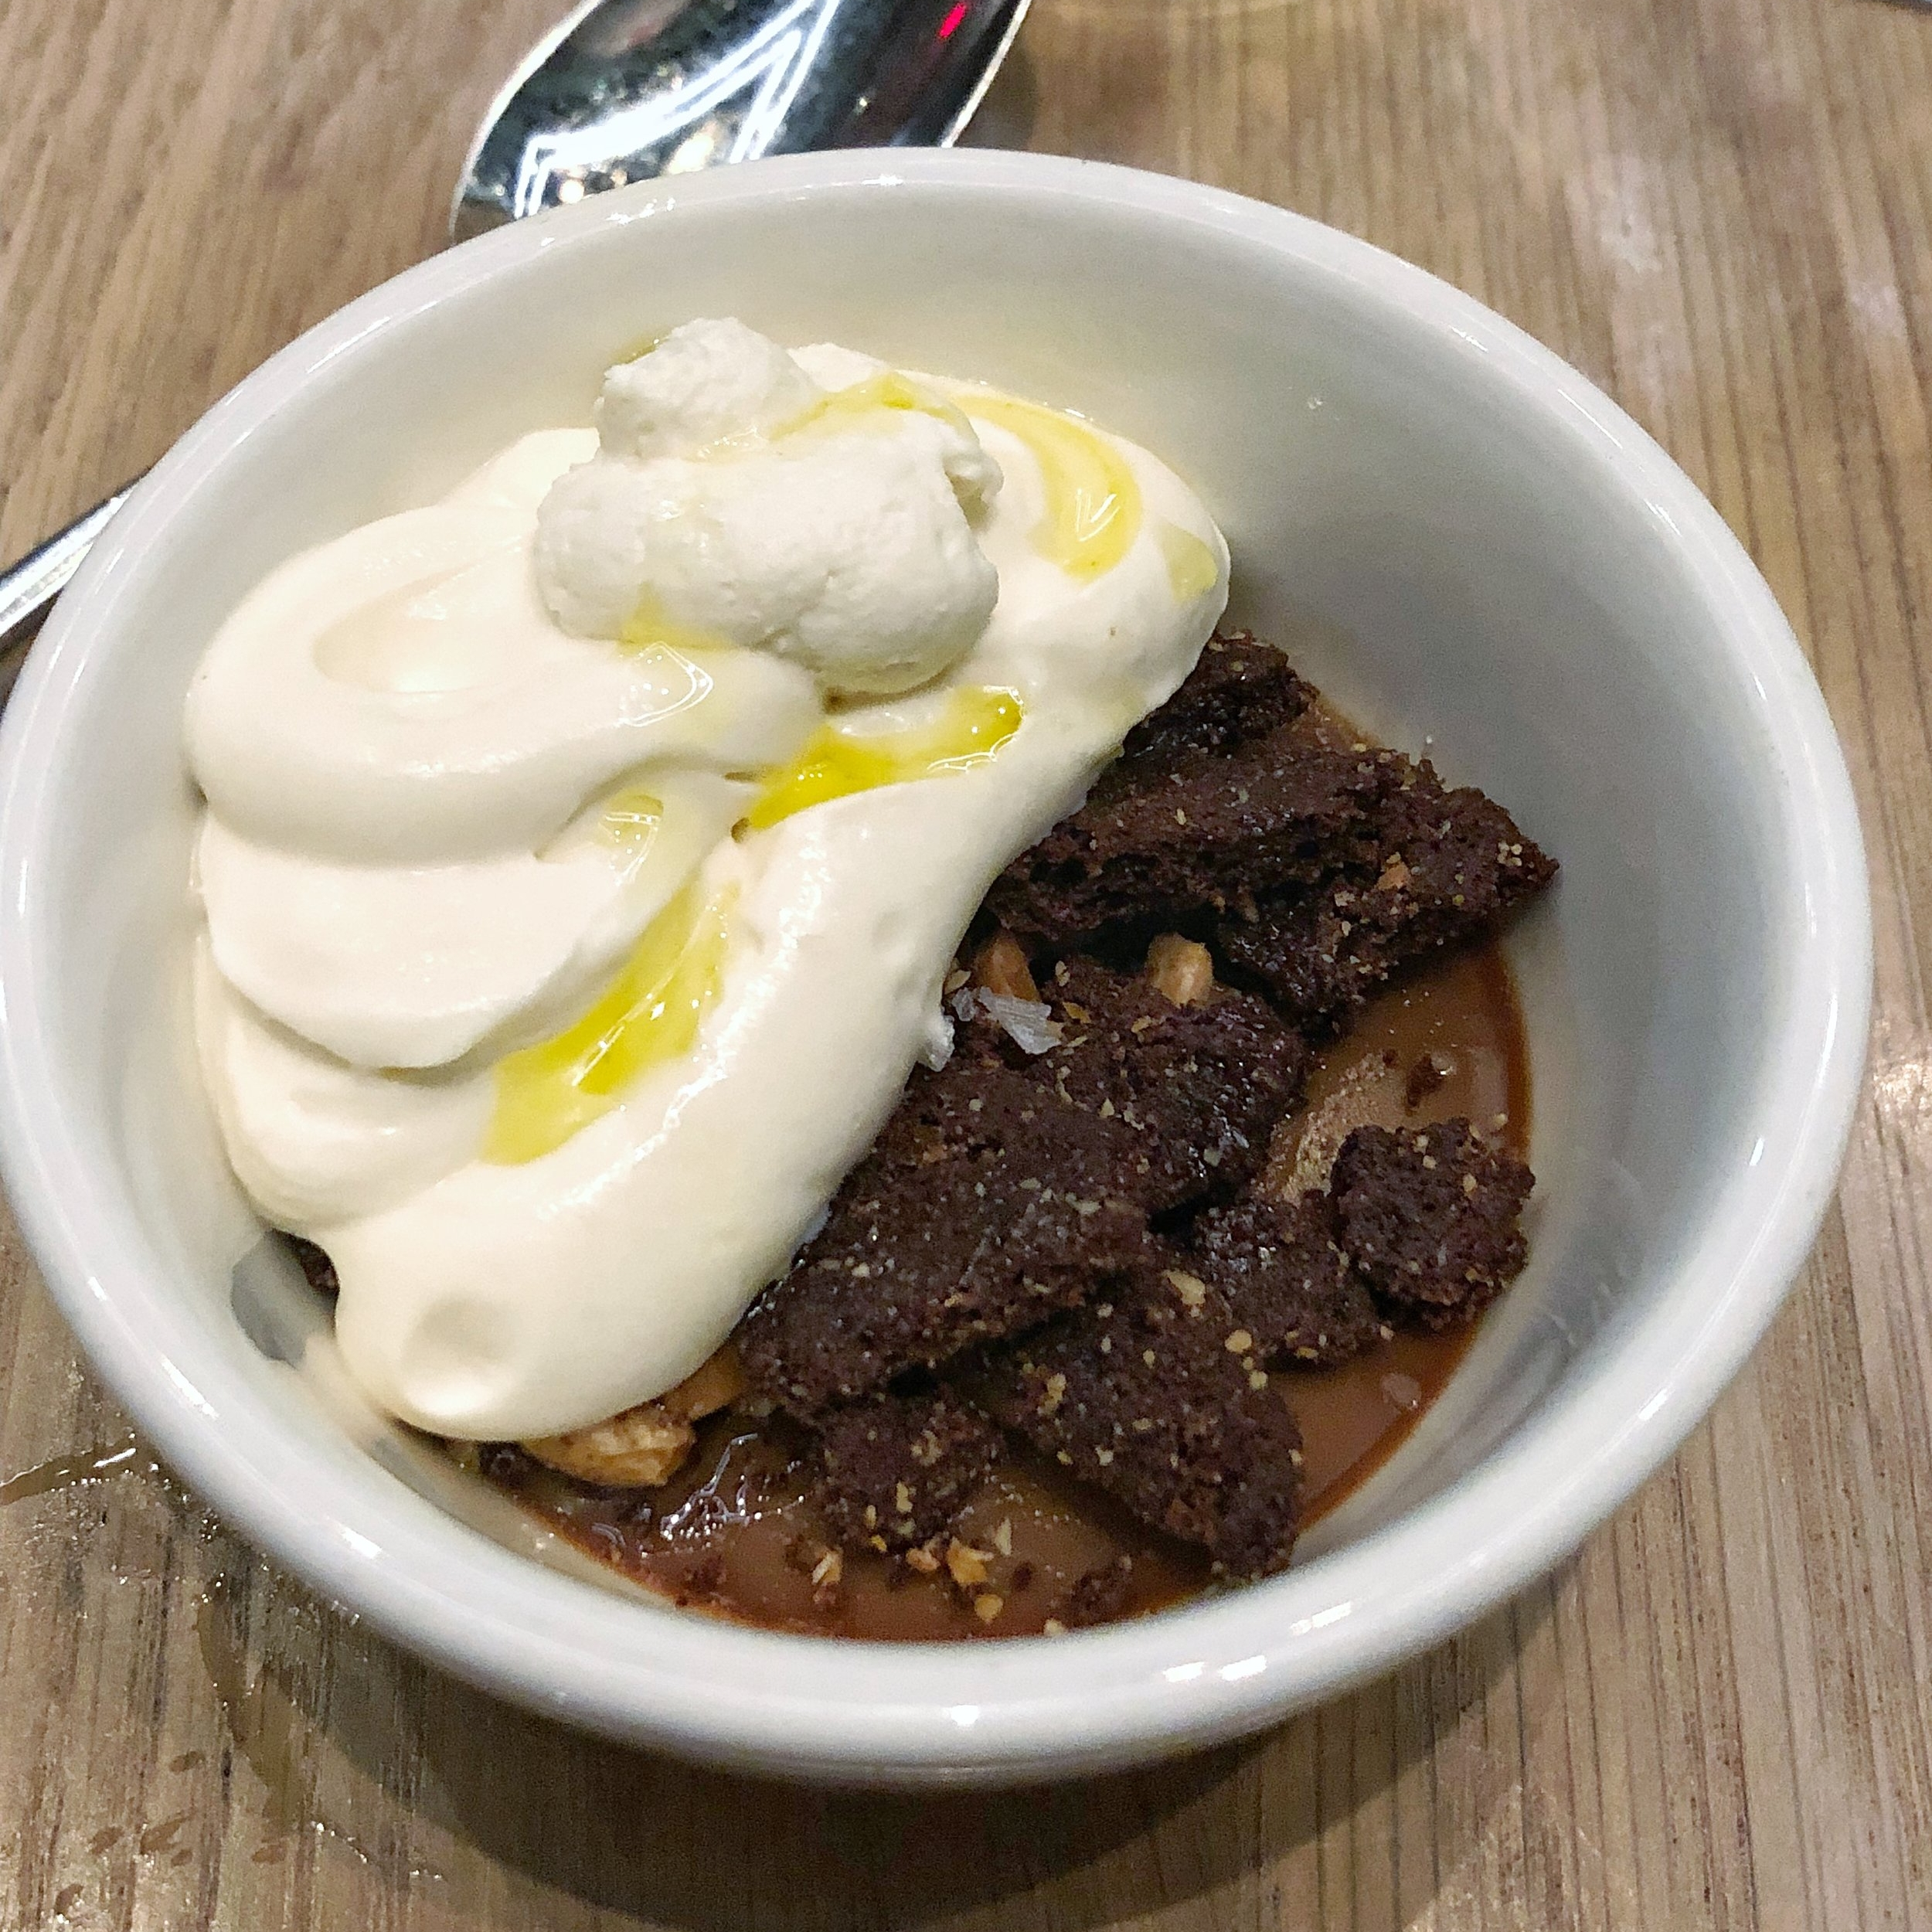 One of the BEST desserts I've ever had - a coffee chocolate custard with fermented whipped cream, sea salt, and olive oil